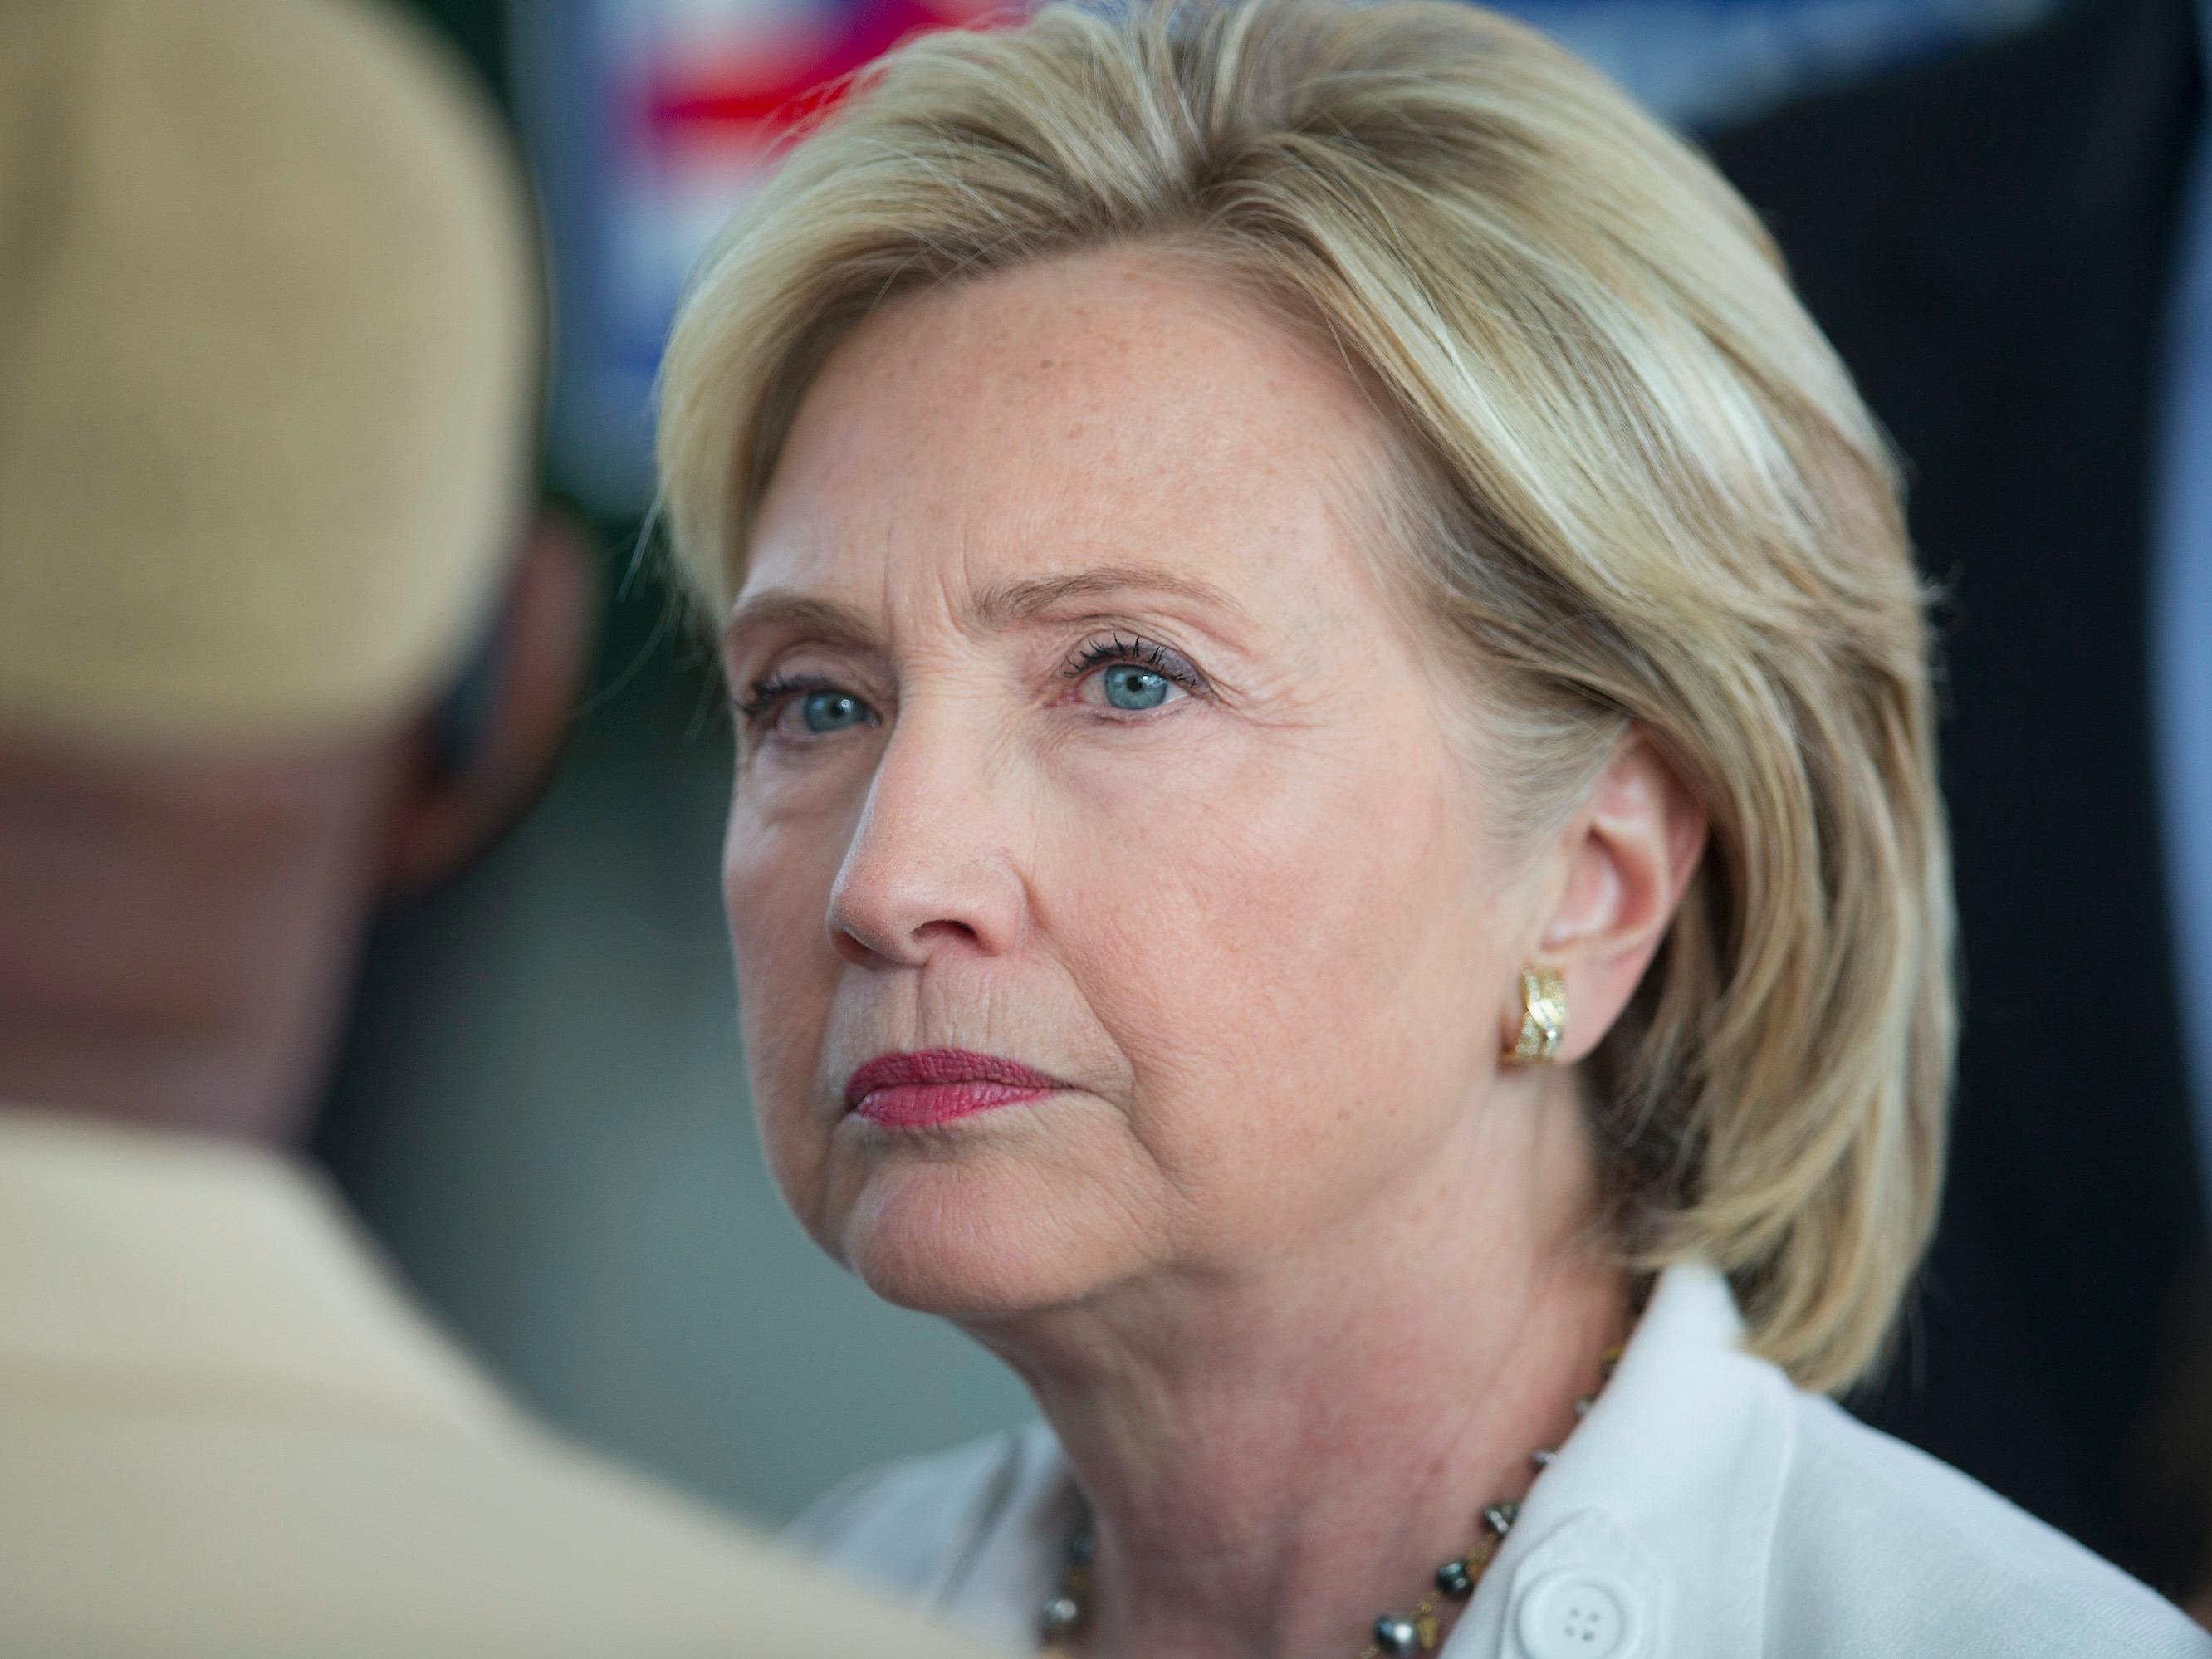 Hillary Clinton's support in a key, early state is suddenly crumbling